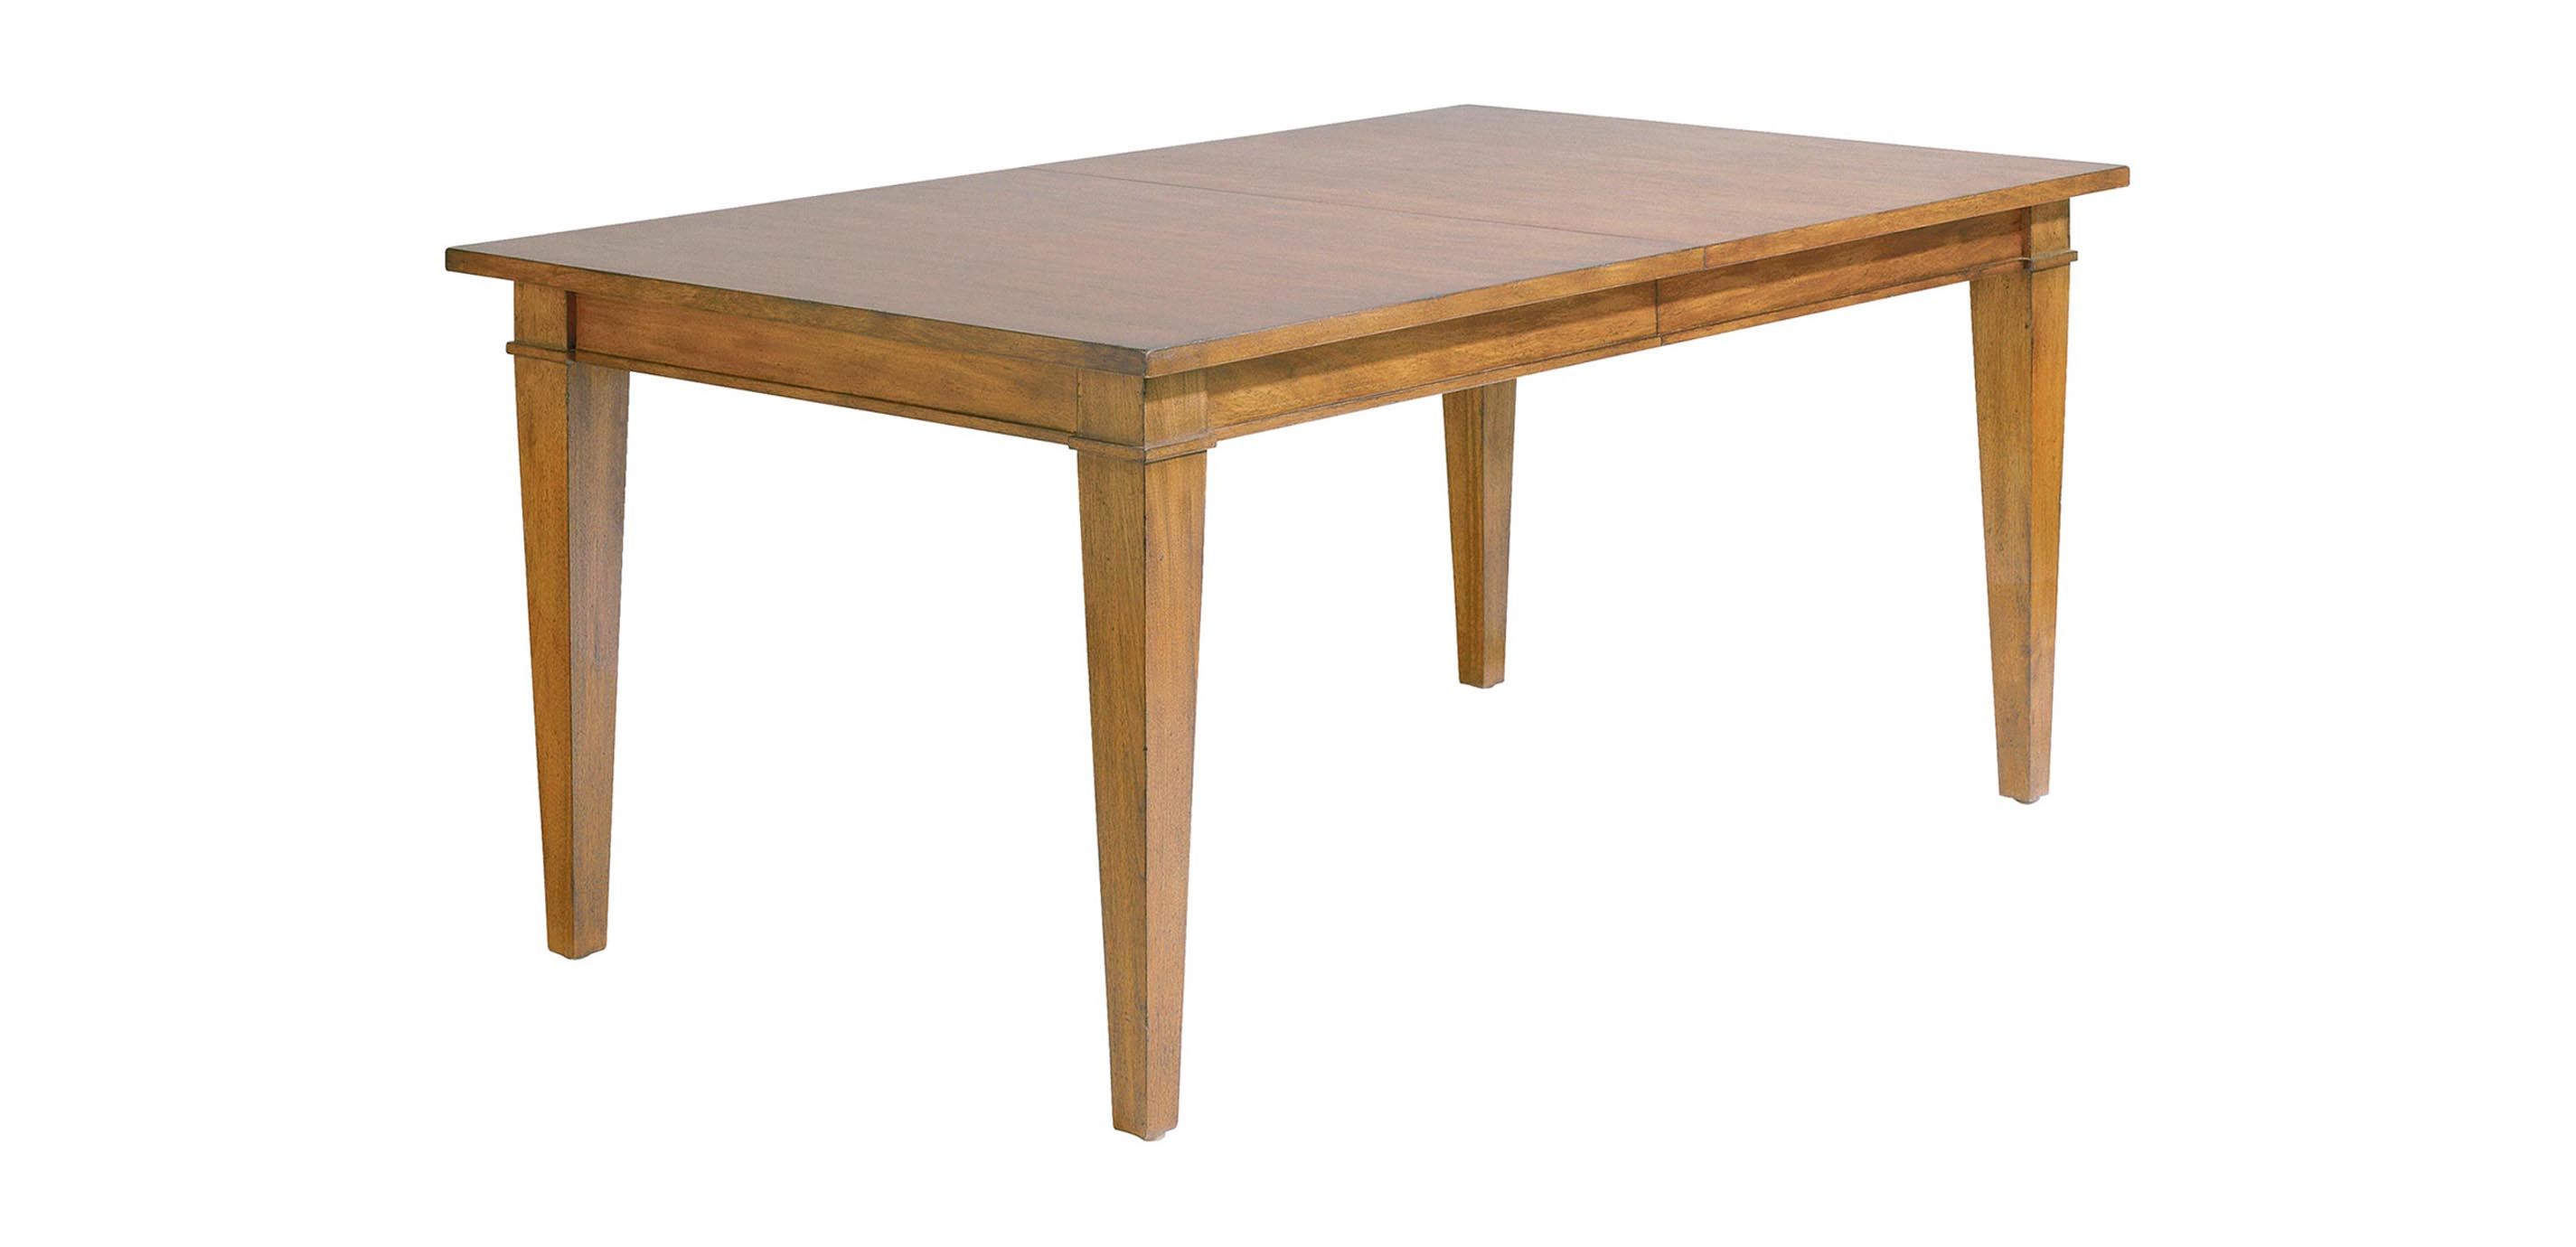 Christopher Dining Table Dining Tables Ethan Allen